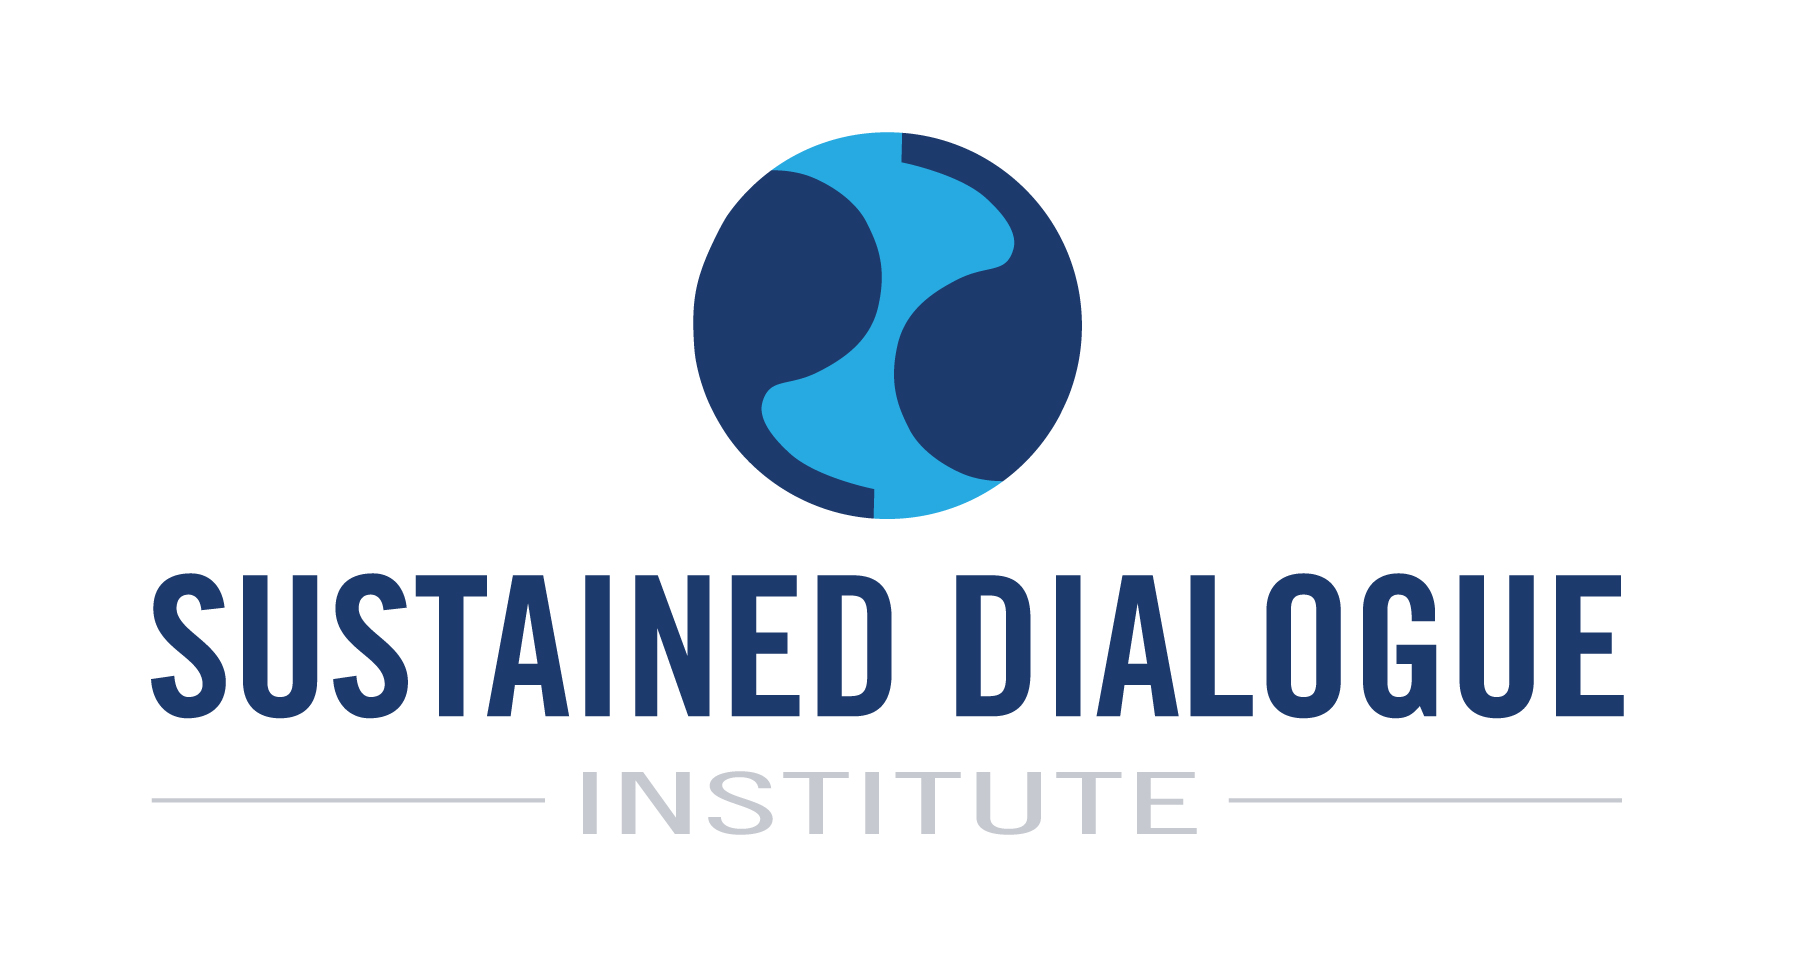 Sustained Dialogue Institute